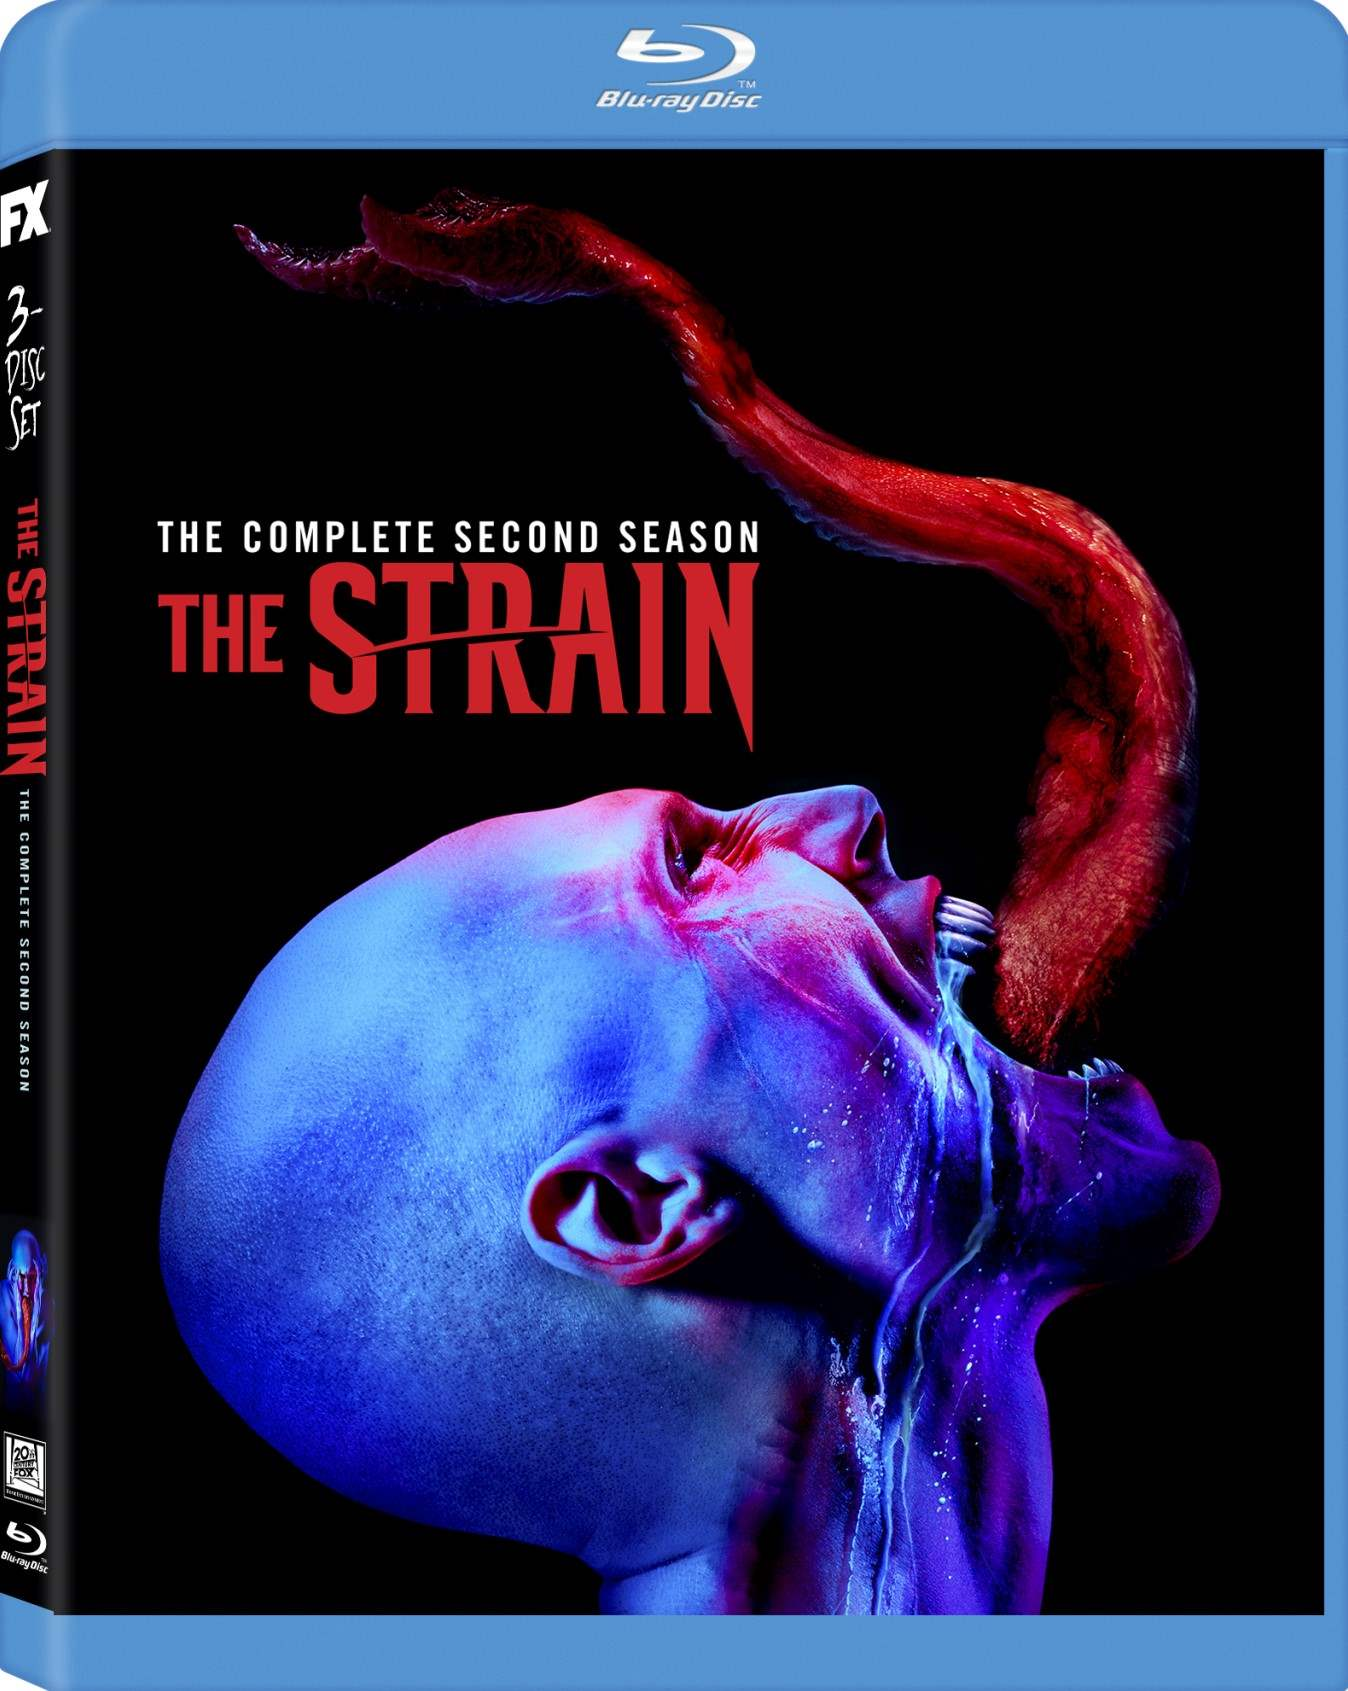 The Strain - The Complete Second Season Blu-Ray box cover art